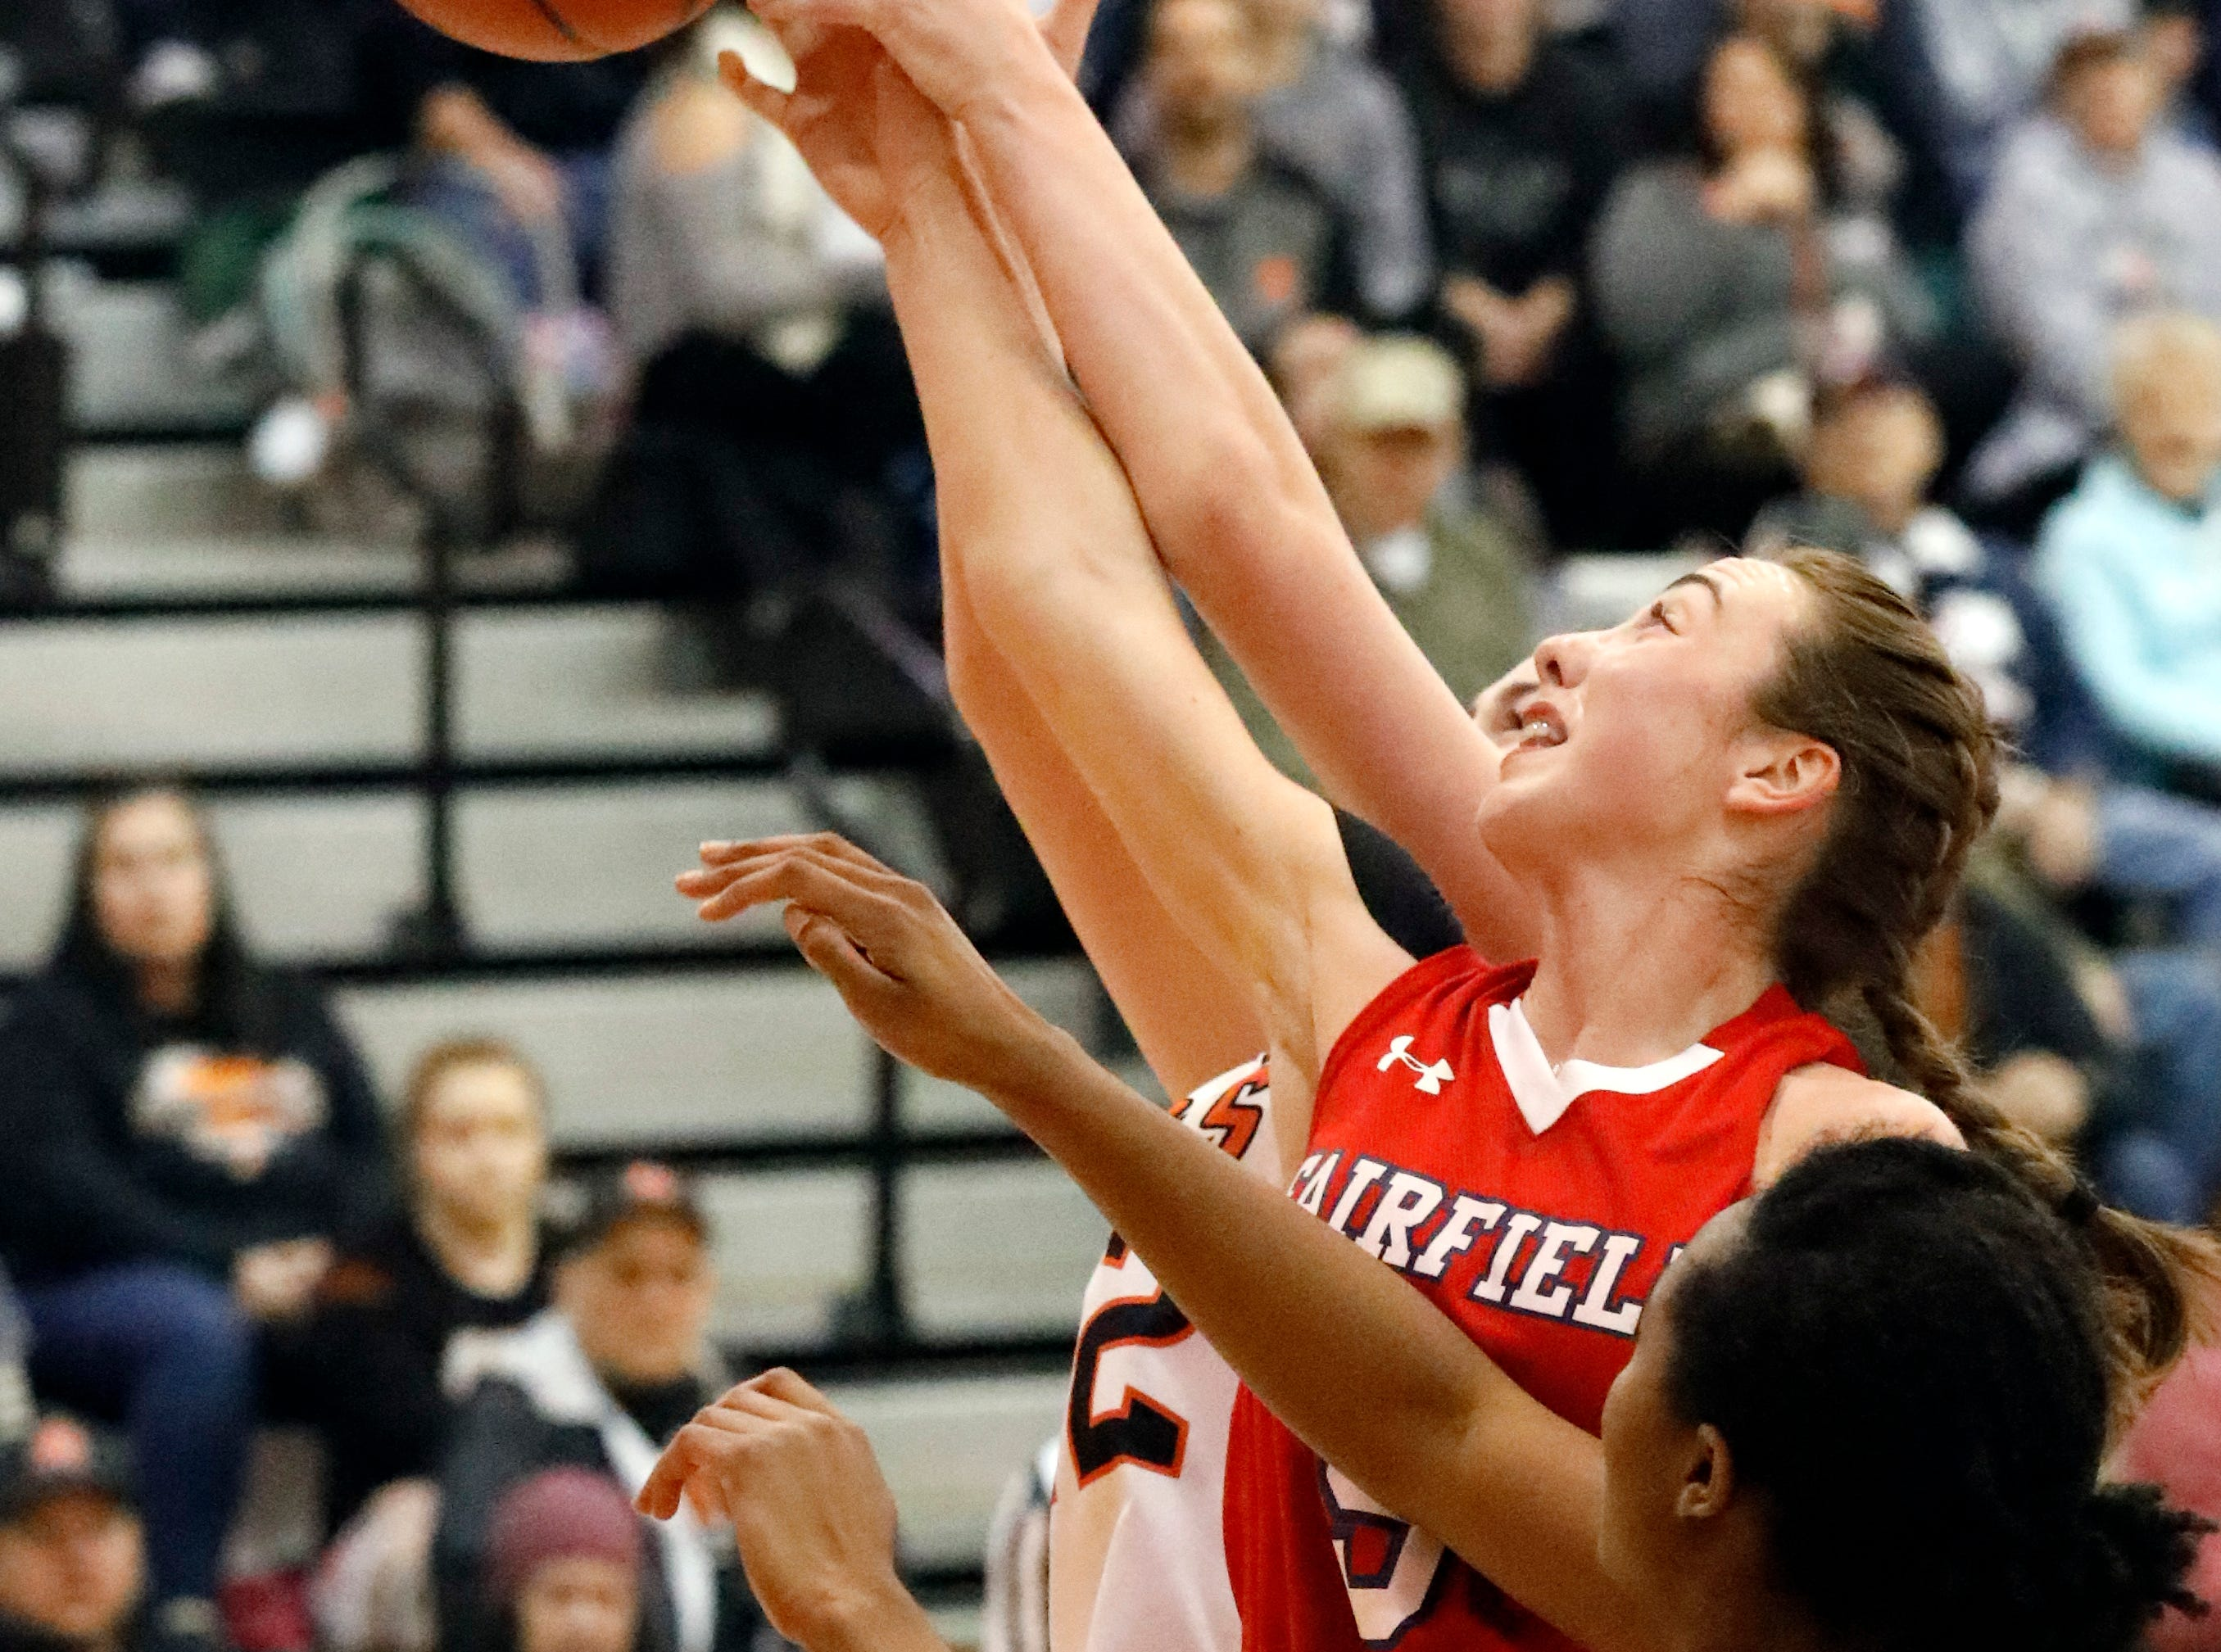 Amanda-Clearcreek defeated previously undefeated Fairfield Christian 51-43 Thursday night, Jan. 31, 2019, at Amanda-Clearcreek High School in Amanda.